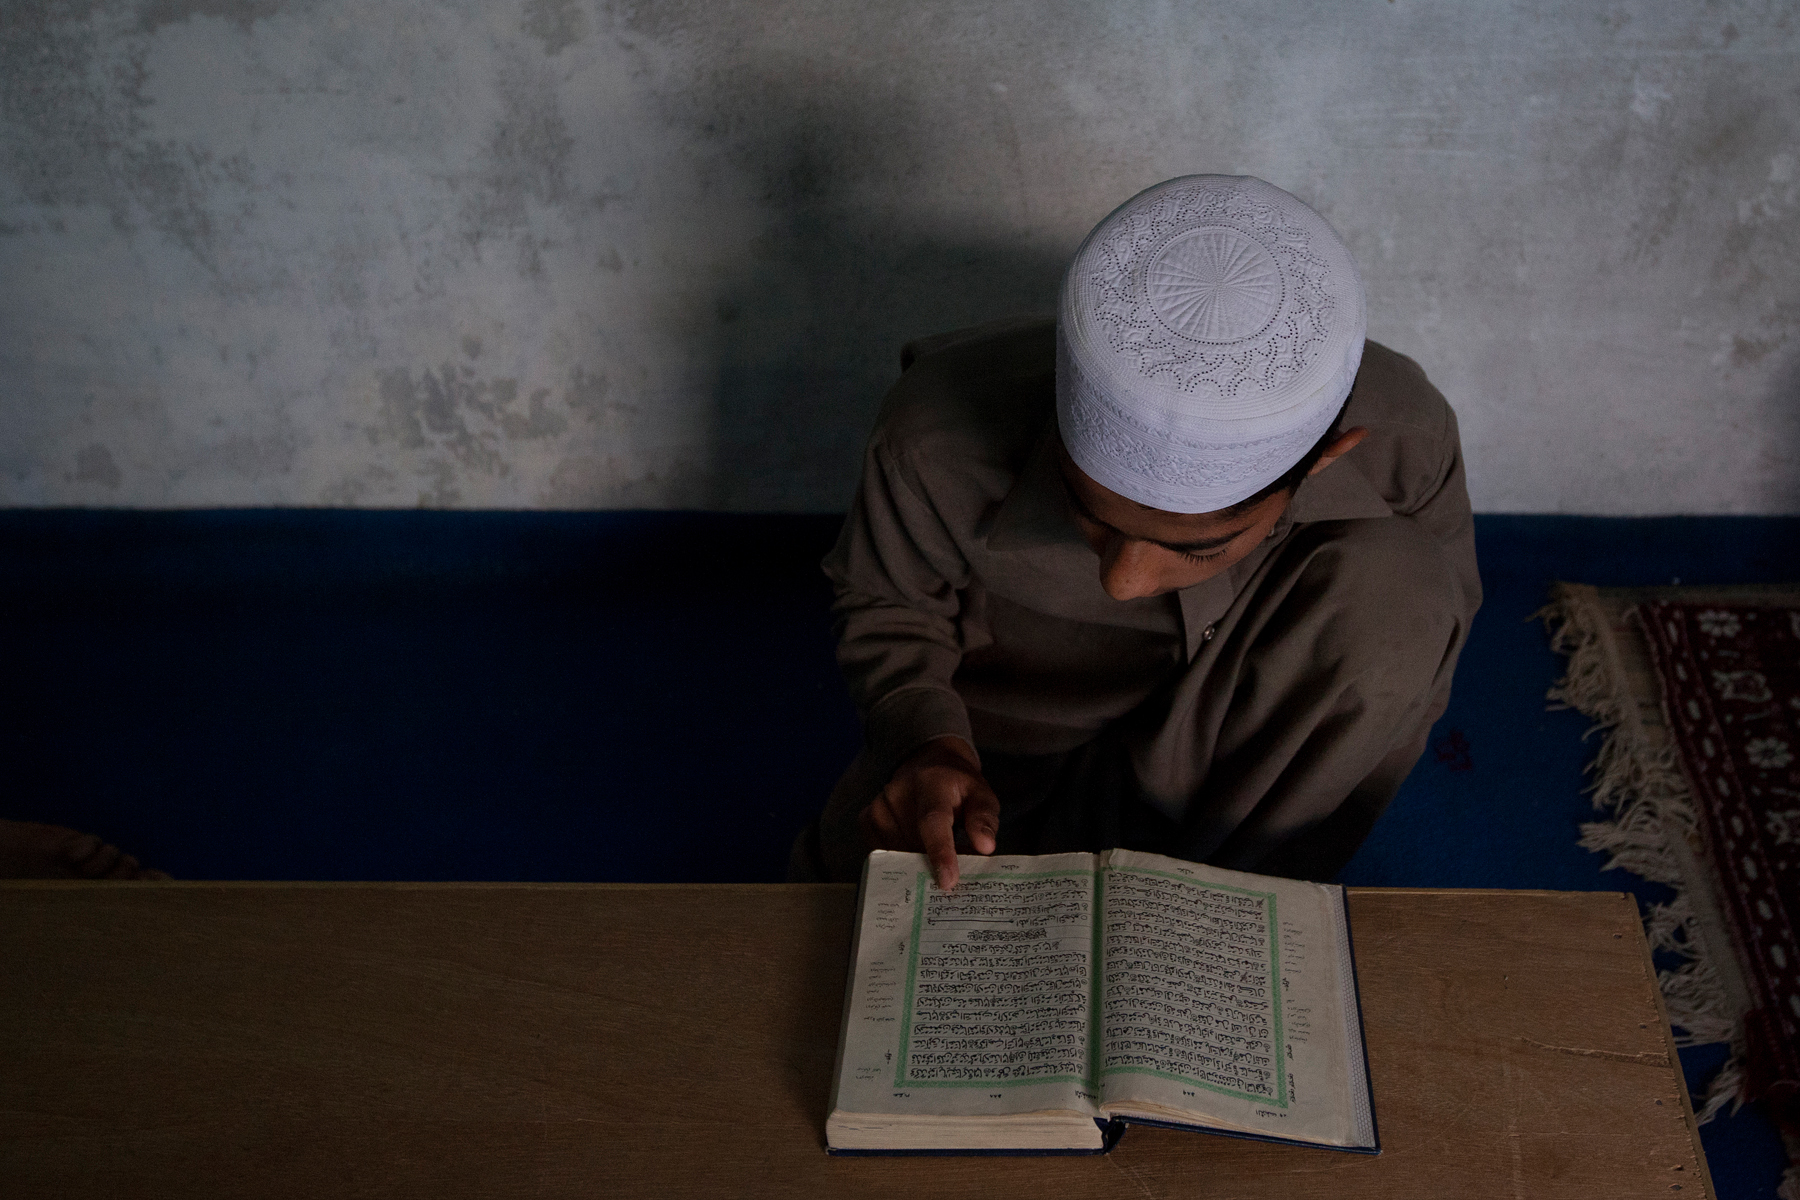 A boy studies the Quran in a religious school in Pakistan